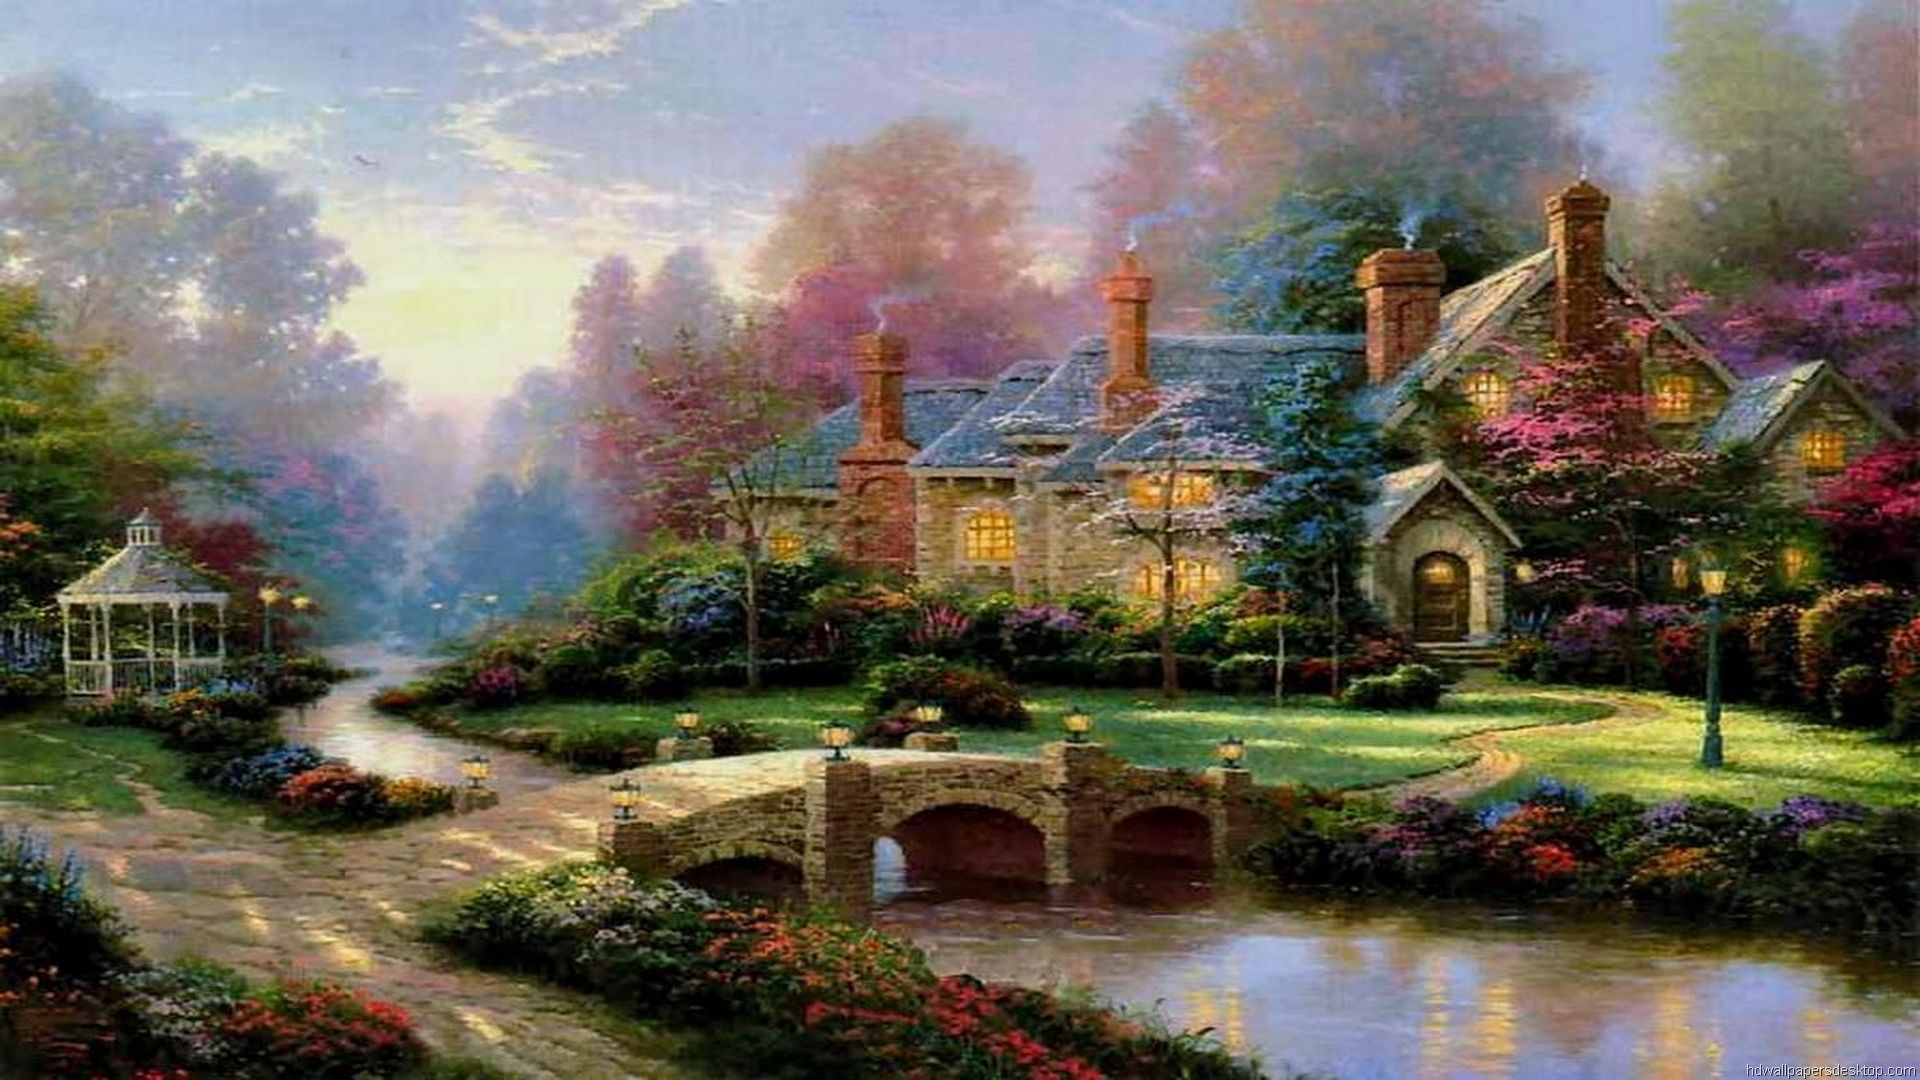 Thomas Kinkade Summer Paintings Thomas Kinkade Wallpaper